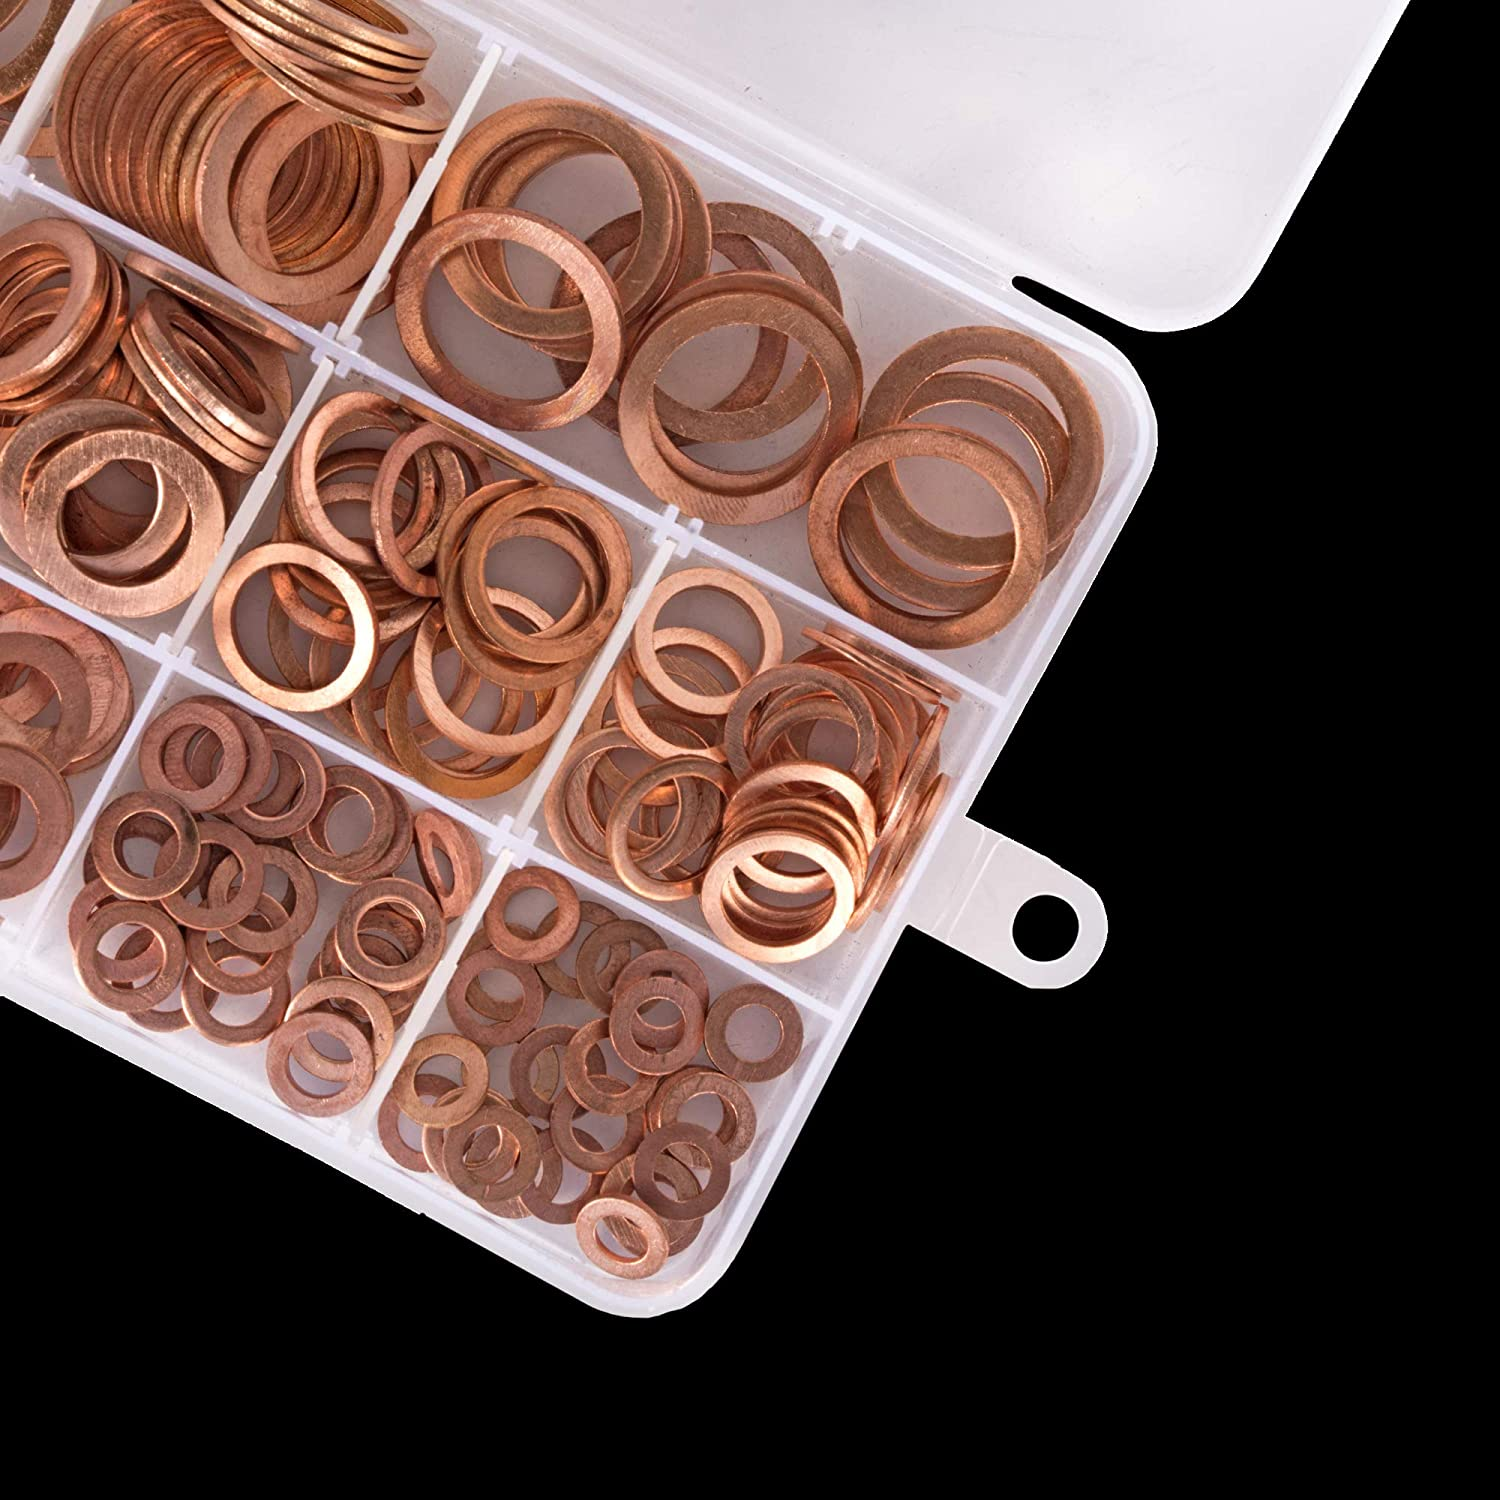 Workshop Buddy 300 Pcs Copper Washer Gasket Set Flat Washer Ring Assortment Kit M5 M12 M16 /& M20 M10 M14 M6.M8